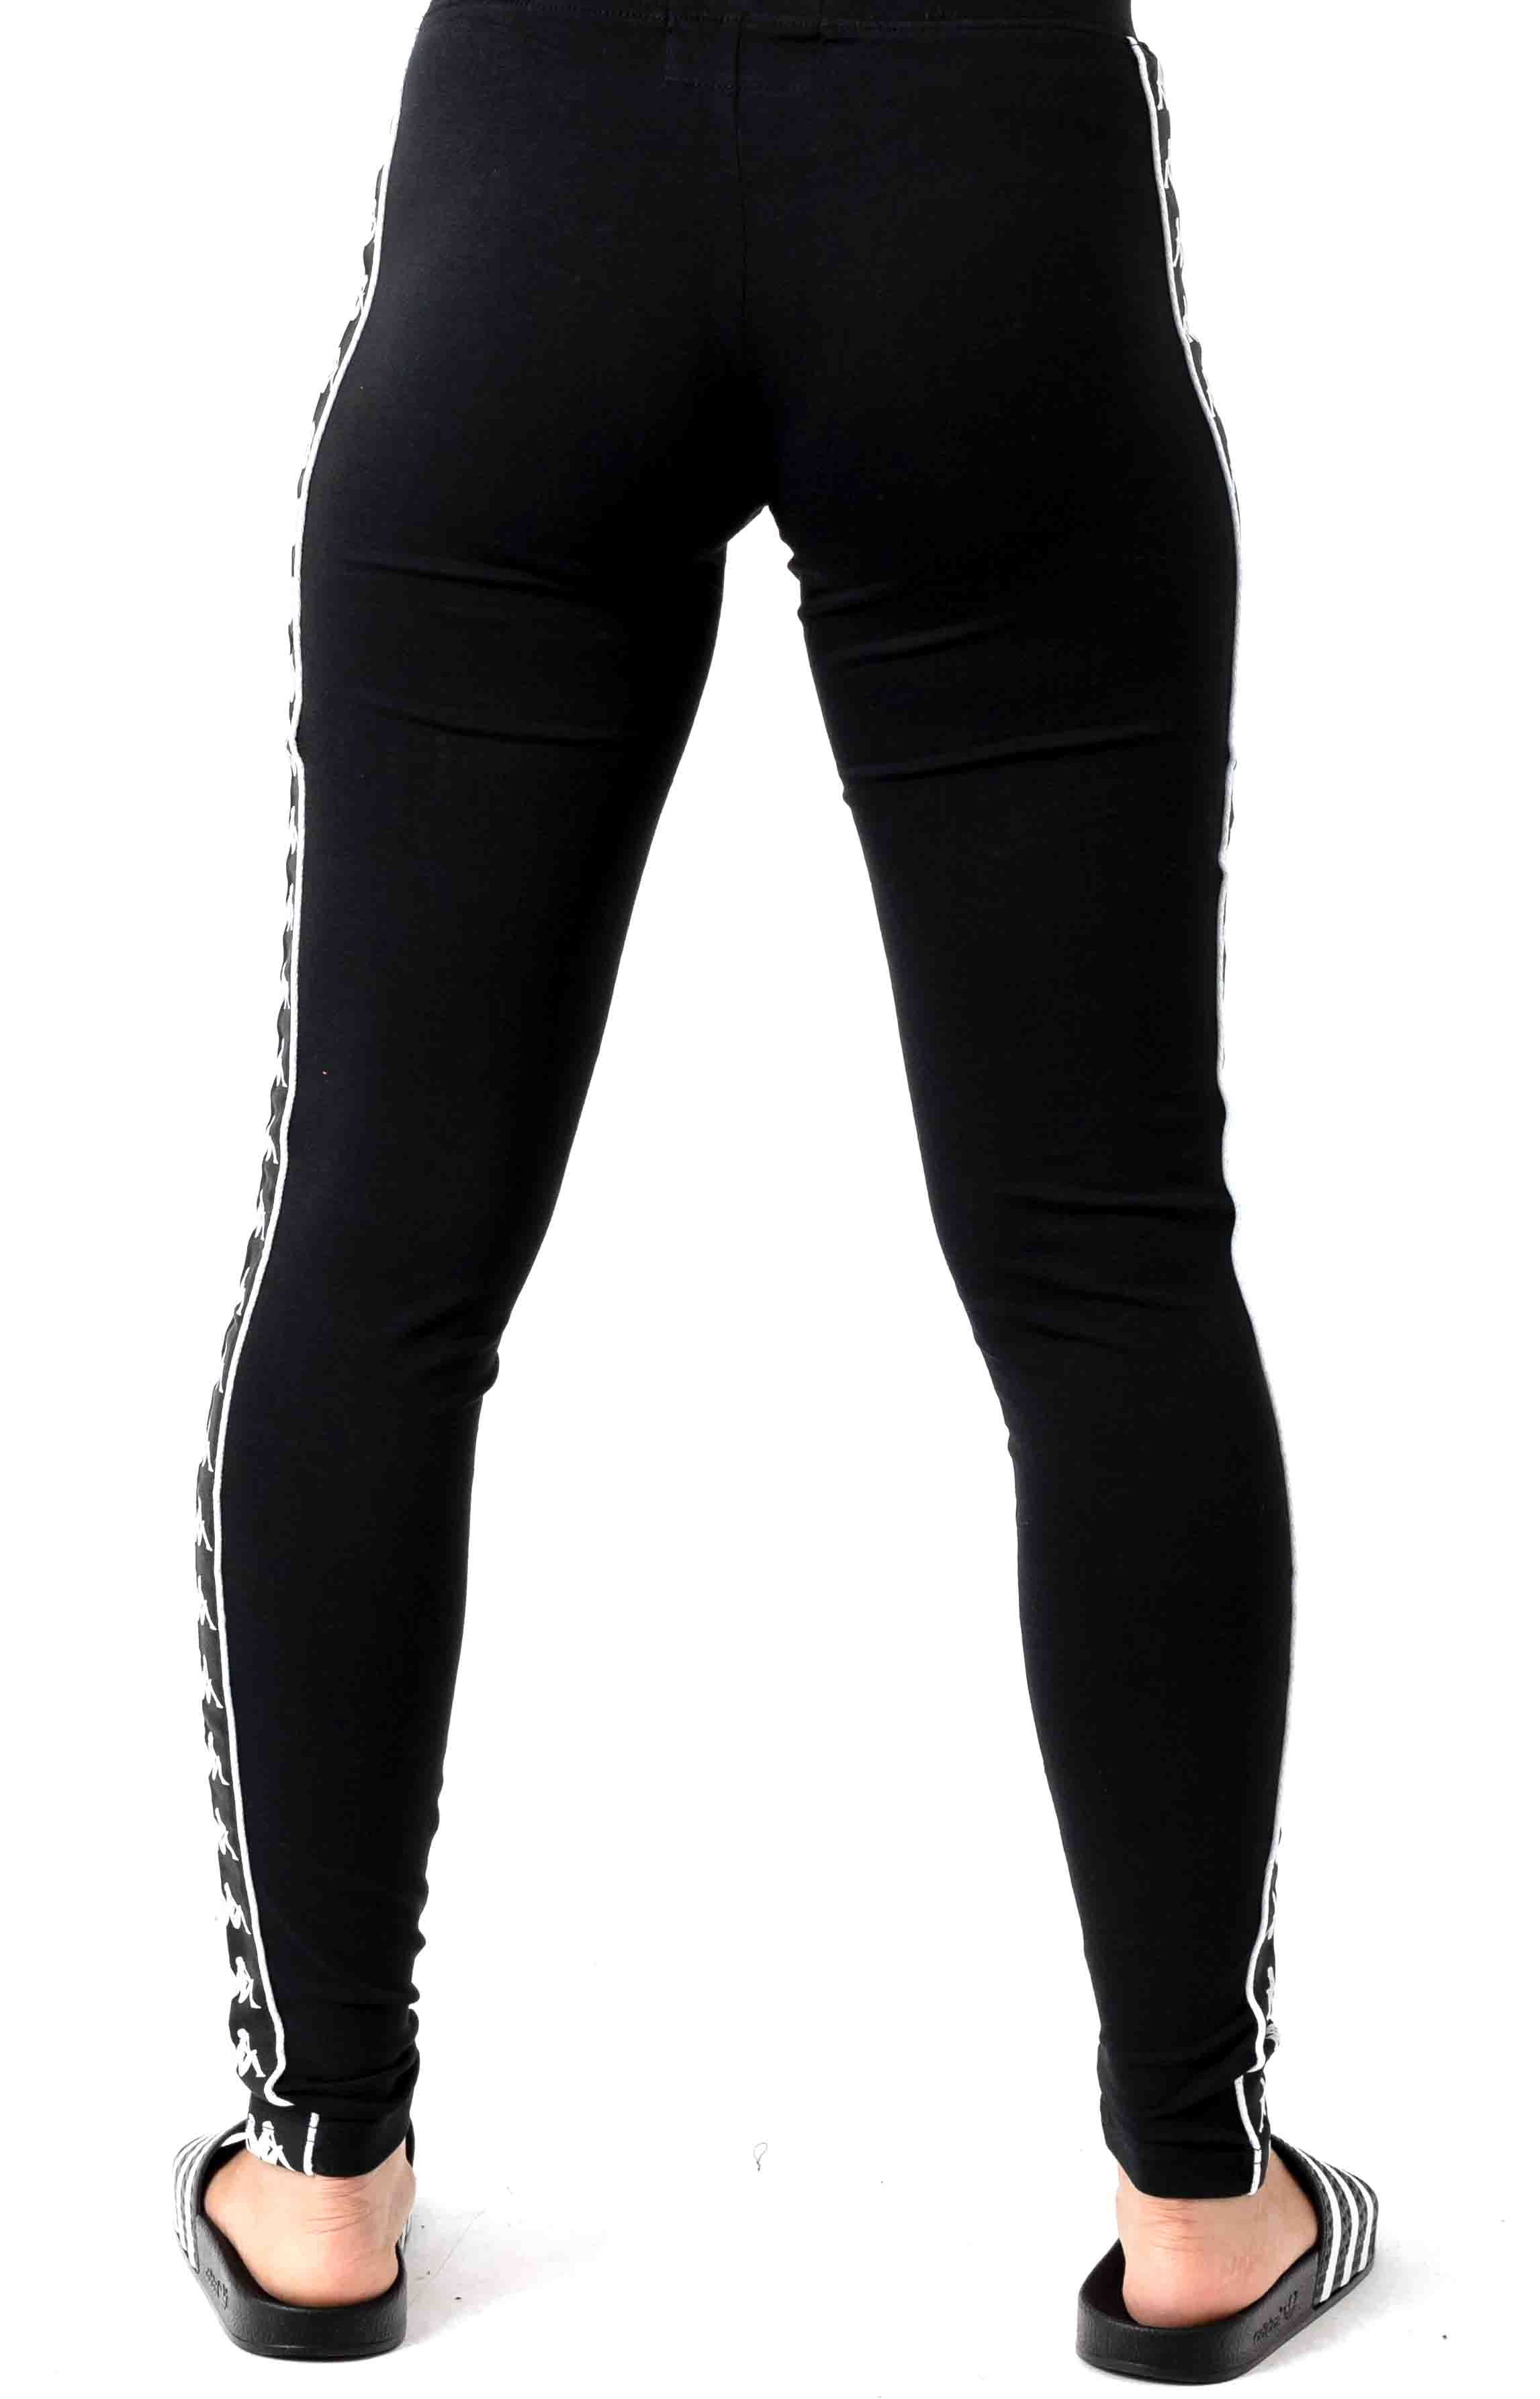 222 Banda Anen Leggings - Black/Black 3